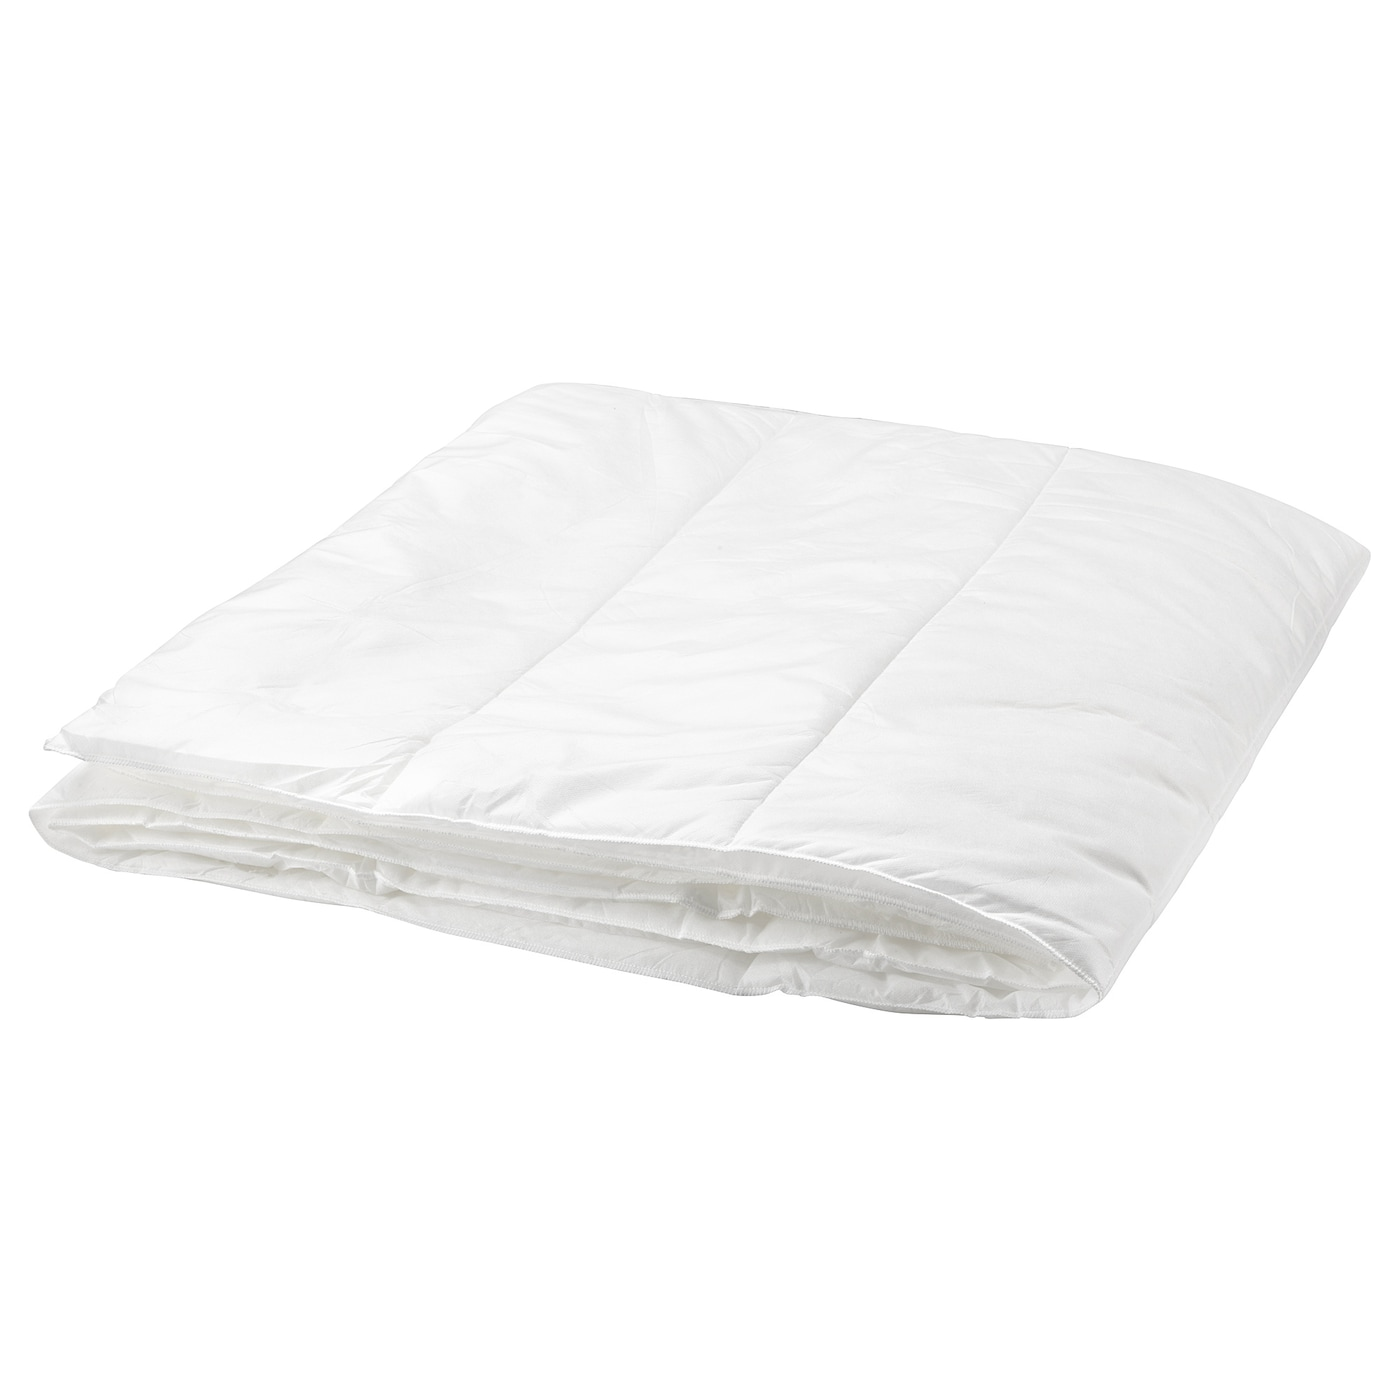 IKEA SILVERTOPP quilt, cooler A good choice if you often feel warm while sleeping.